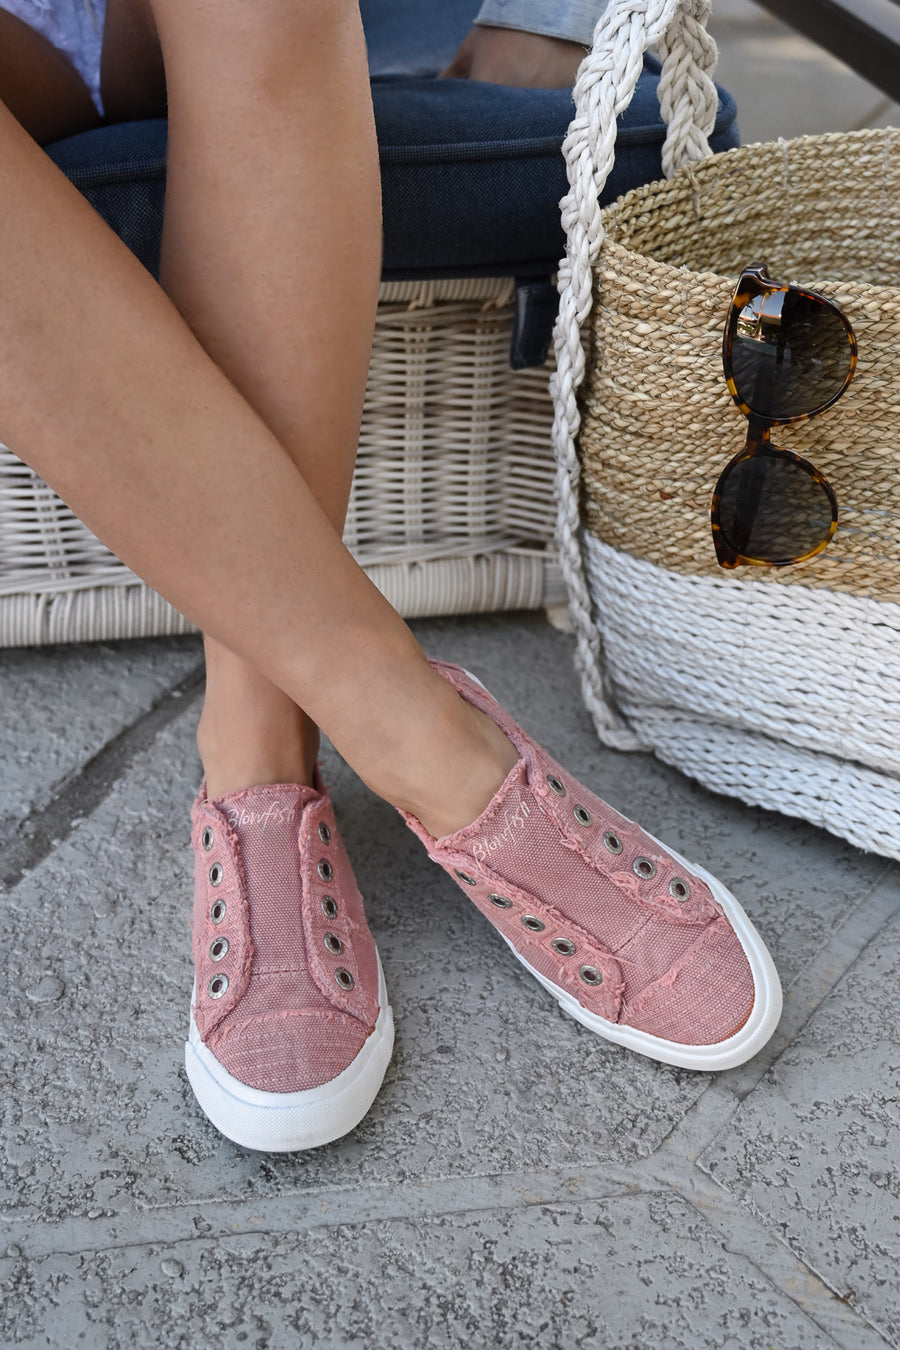 Wherever You Wander Sneakers - Rose casual sneakers, Closet Candy Boutique 2